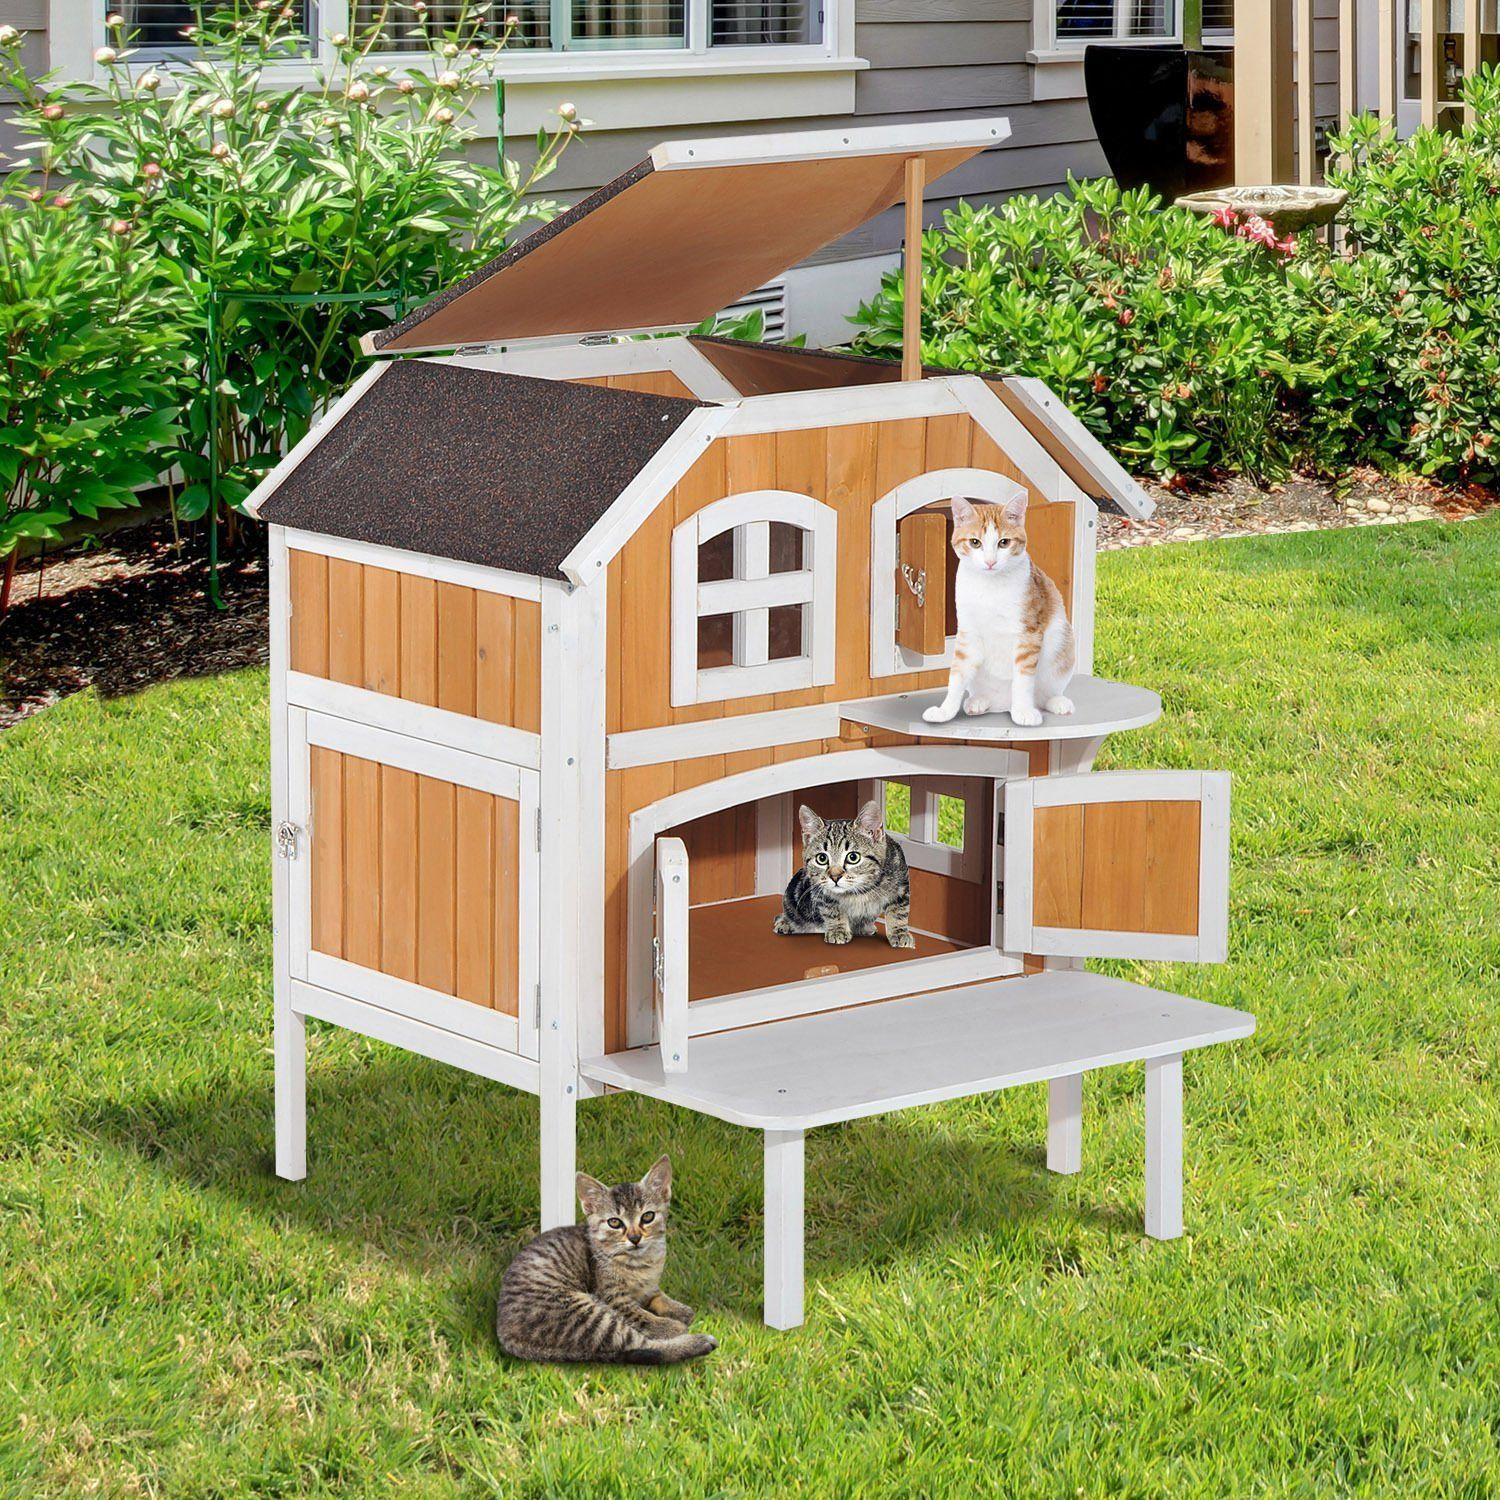 Cat House For Outdoor Indoor Cats Wooden Raised Elevated Home Cottage Kennel House Deals Wooden Cat House Outdoor Cat Shelter Outdoor Cat House